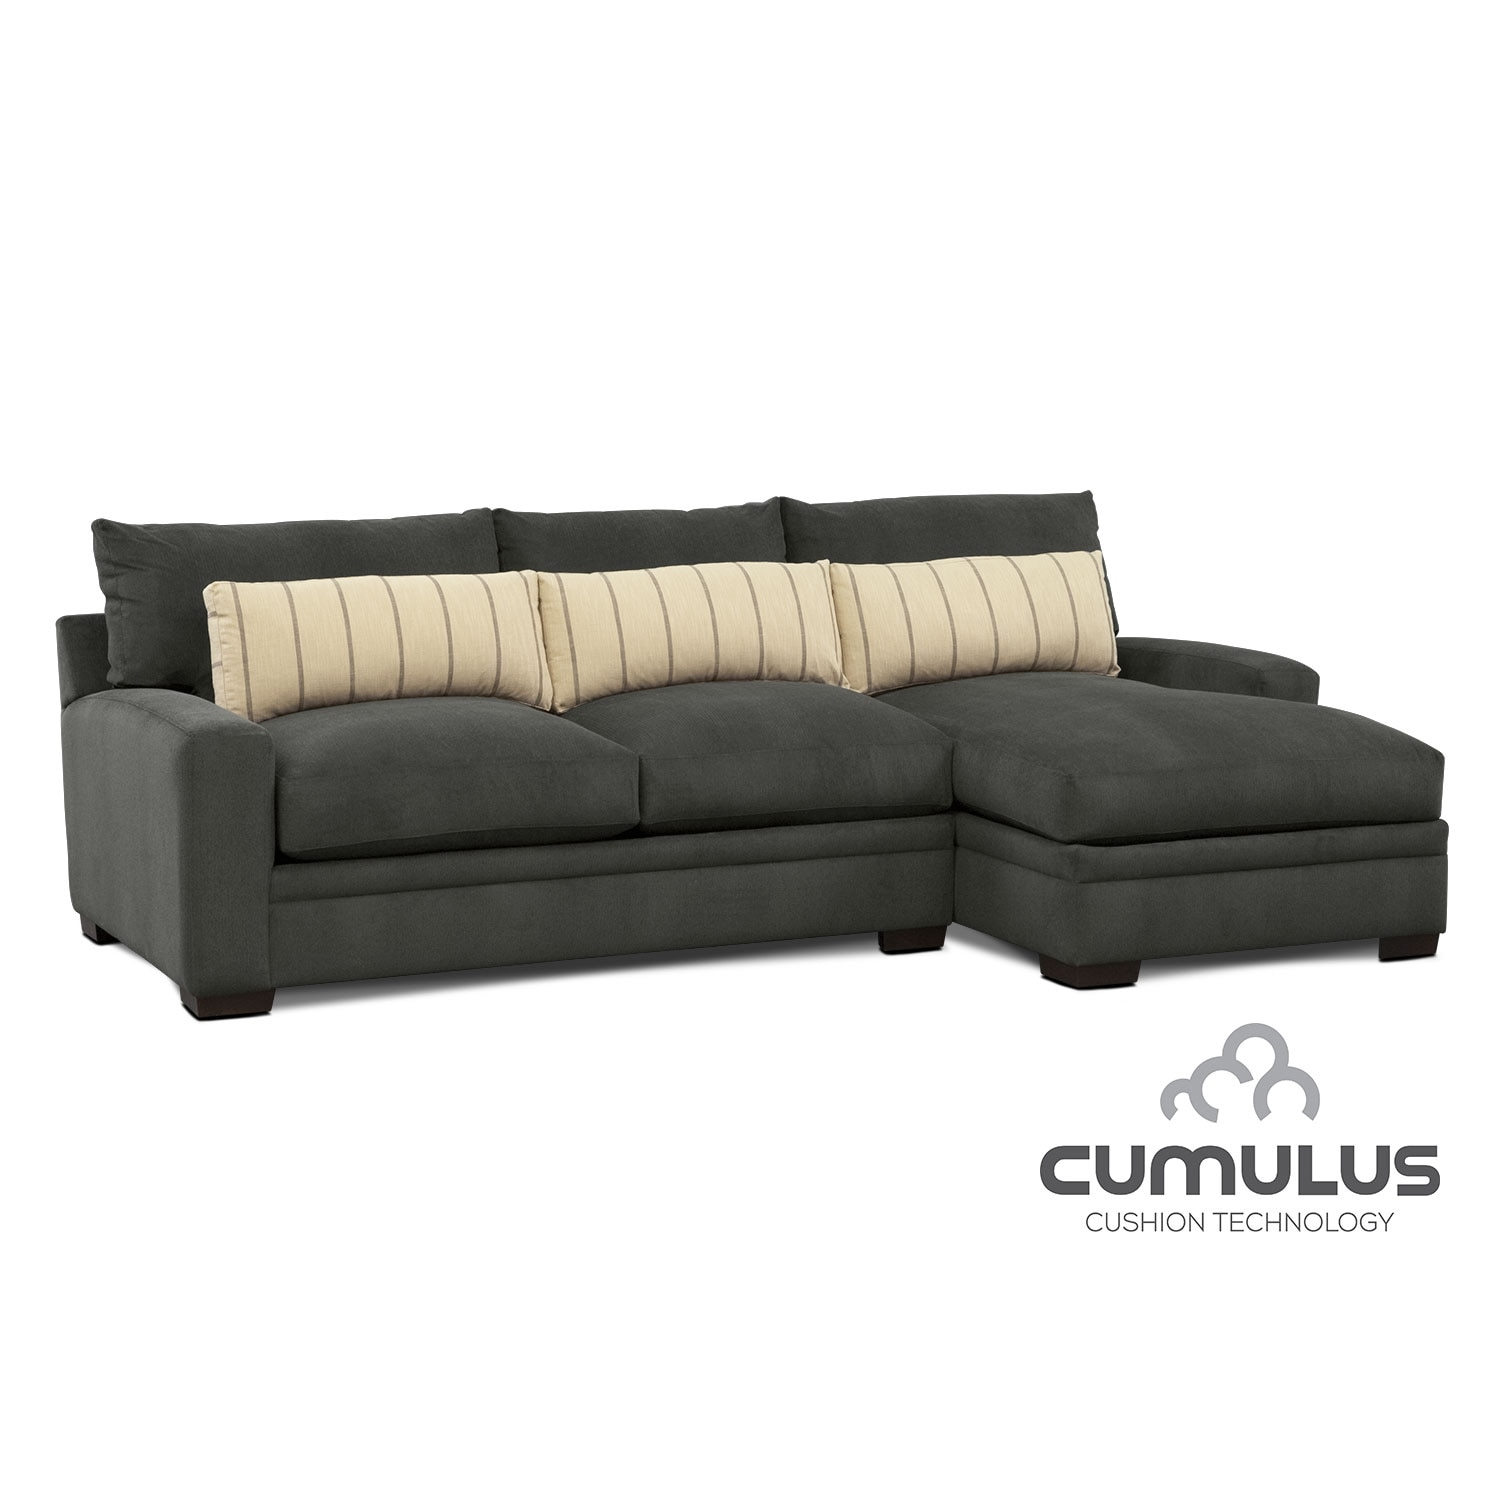 Living Room Furniture - Ventura 2-Piece Sectional with Right-Facing Chaise - Charcoal